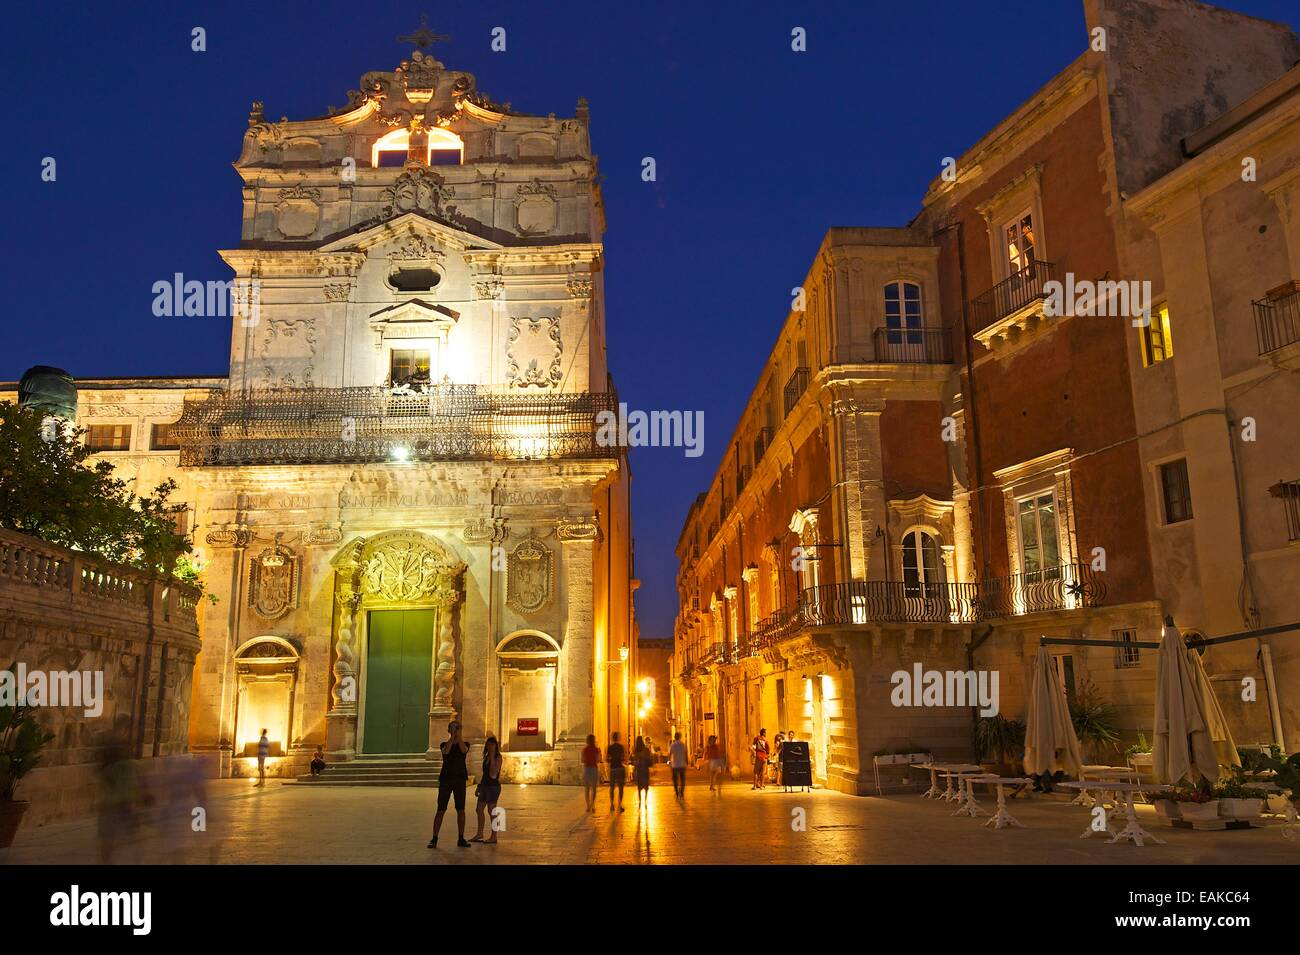 Historic town centre, Ortygia, Syracuse, Province of Syracuse, Sicily, Italy - Stock Image